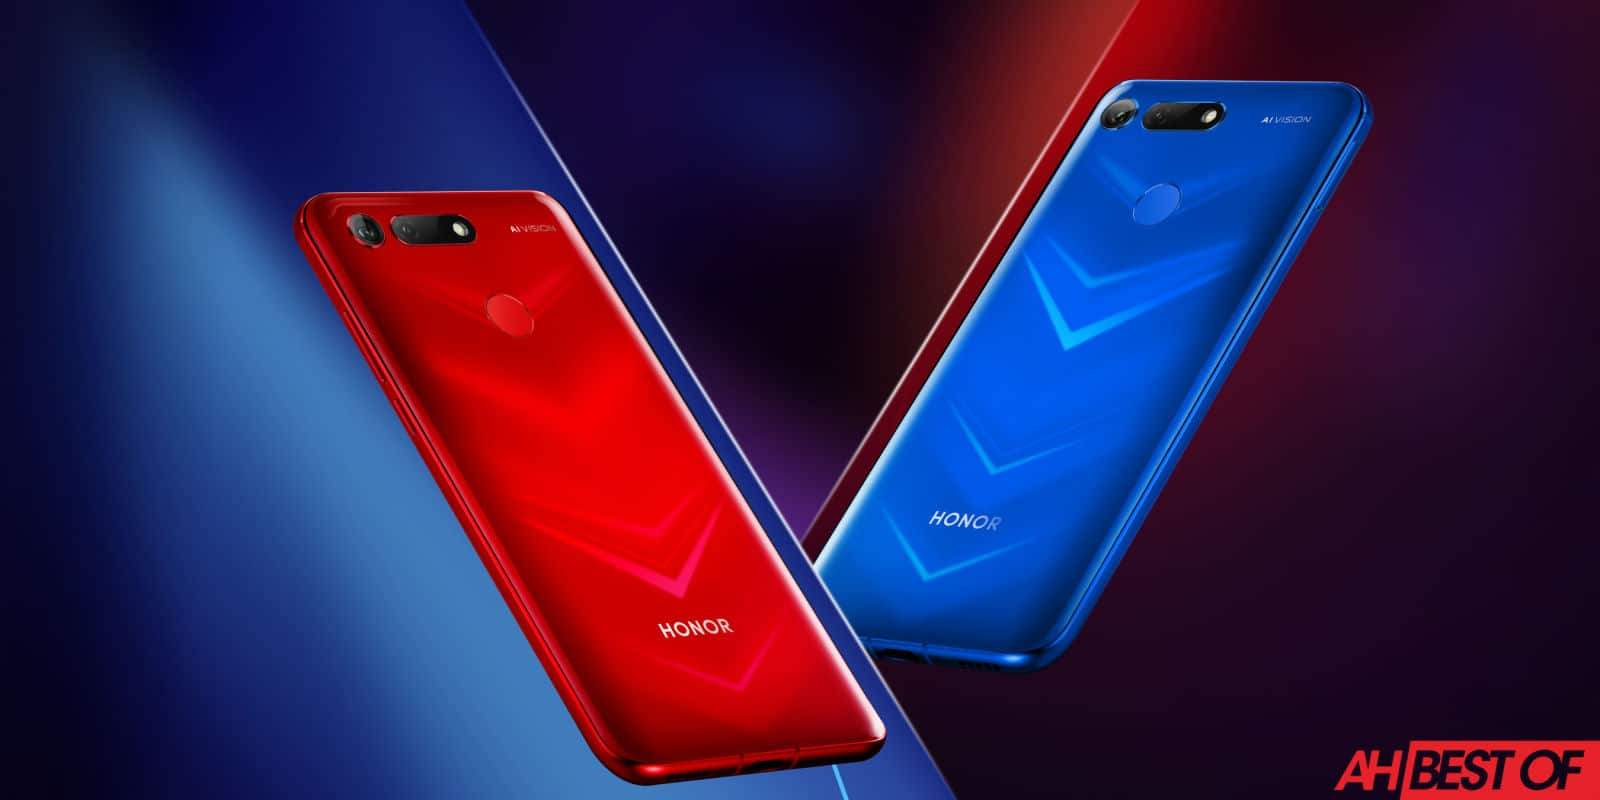 best of ces 2019 honor view 20 AH